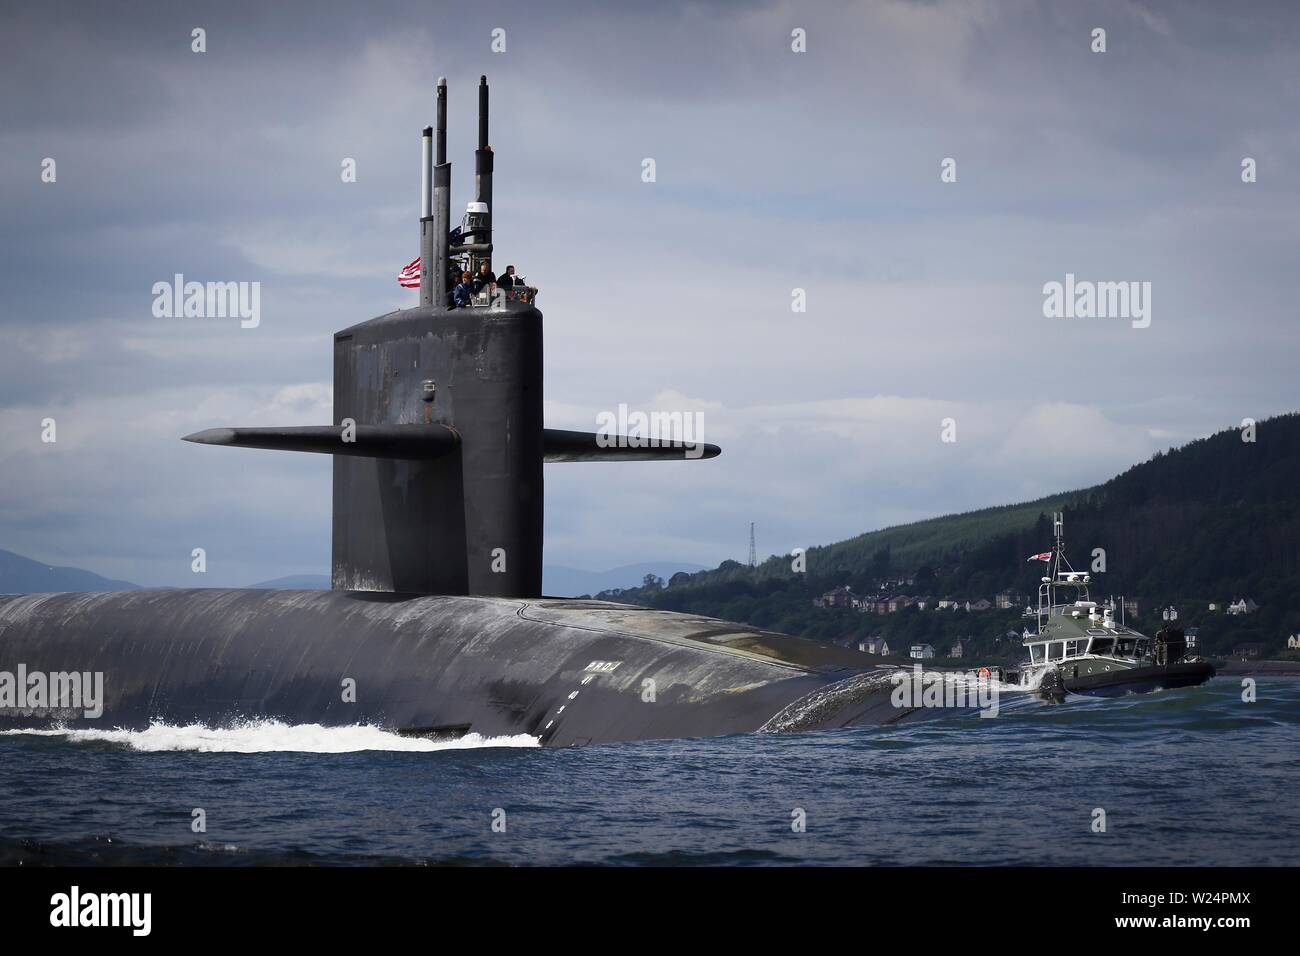 The U.S. Navy Ohio-class ballistic-missile nuclear submarine USS Alaska arrives for a port visit to Royal Navy Base Clyde July 2, 2019 in Faslane, Scotland. - Stock Image